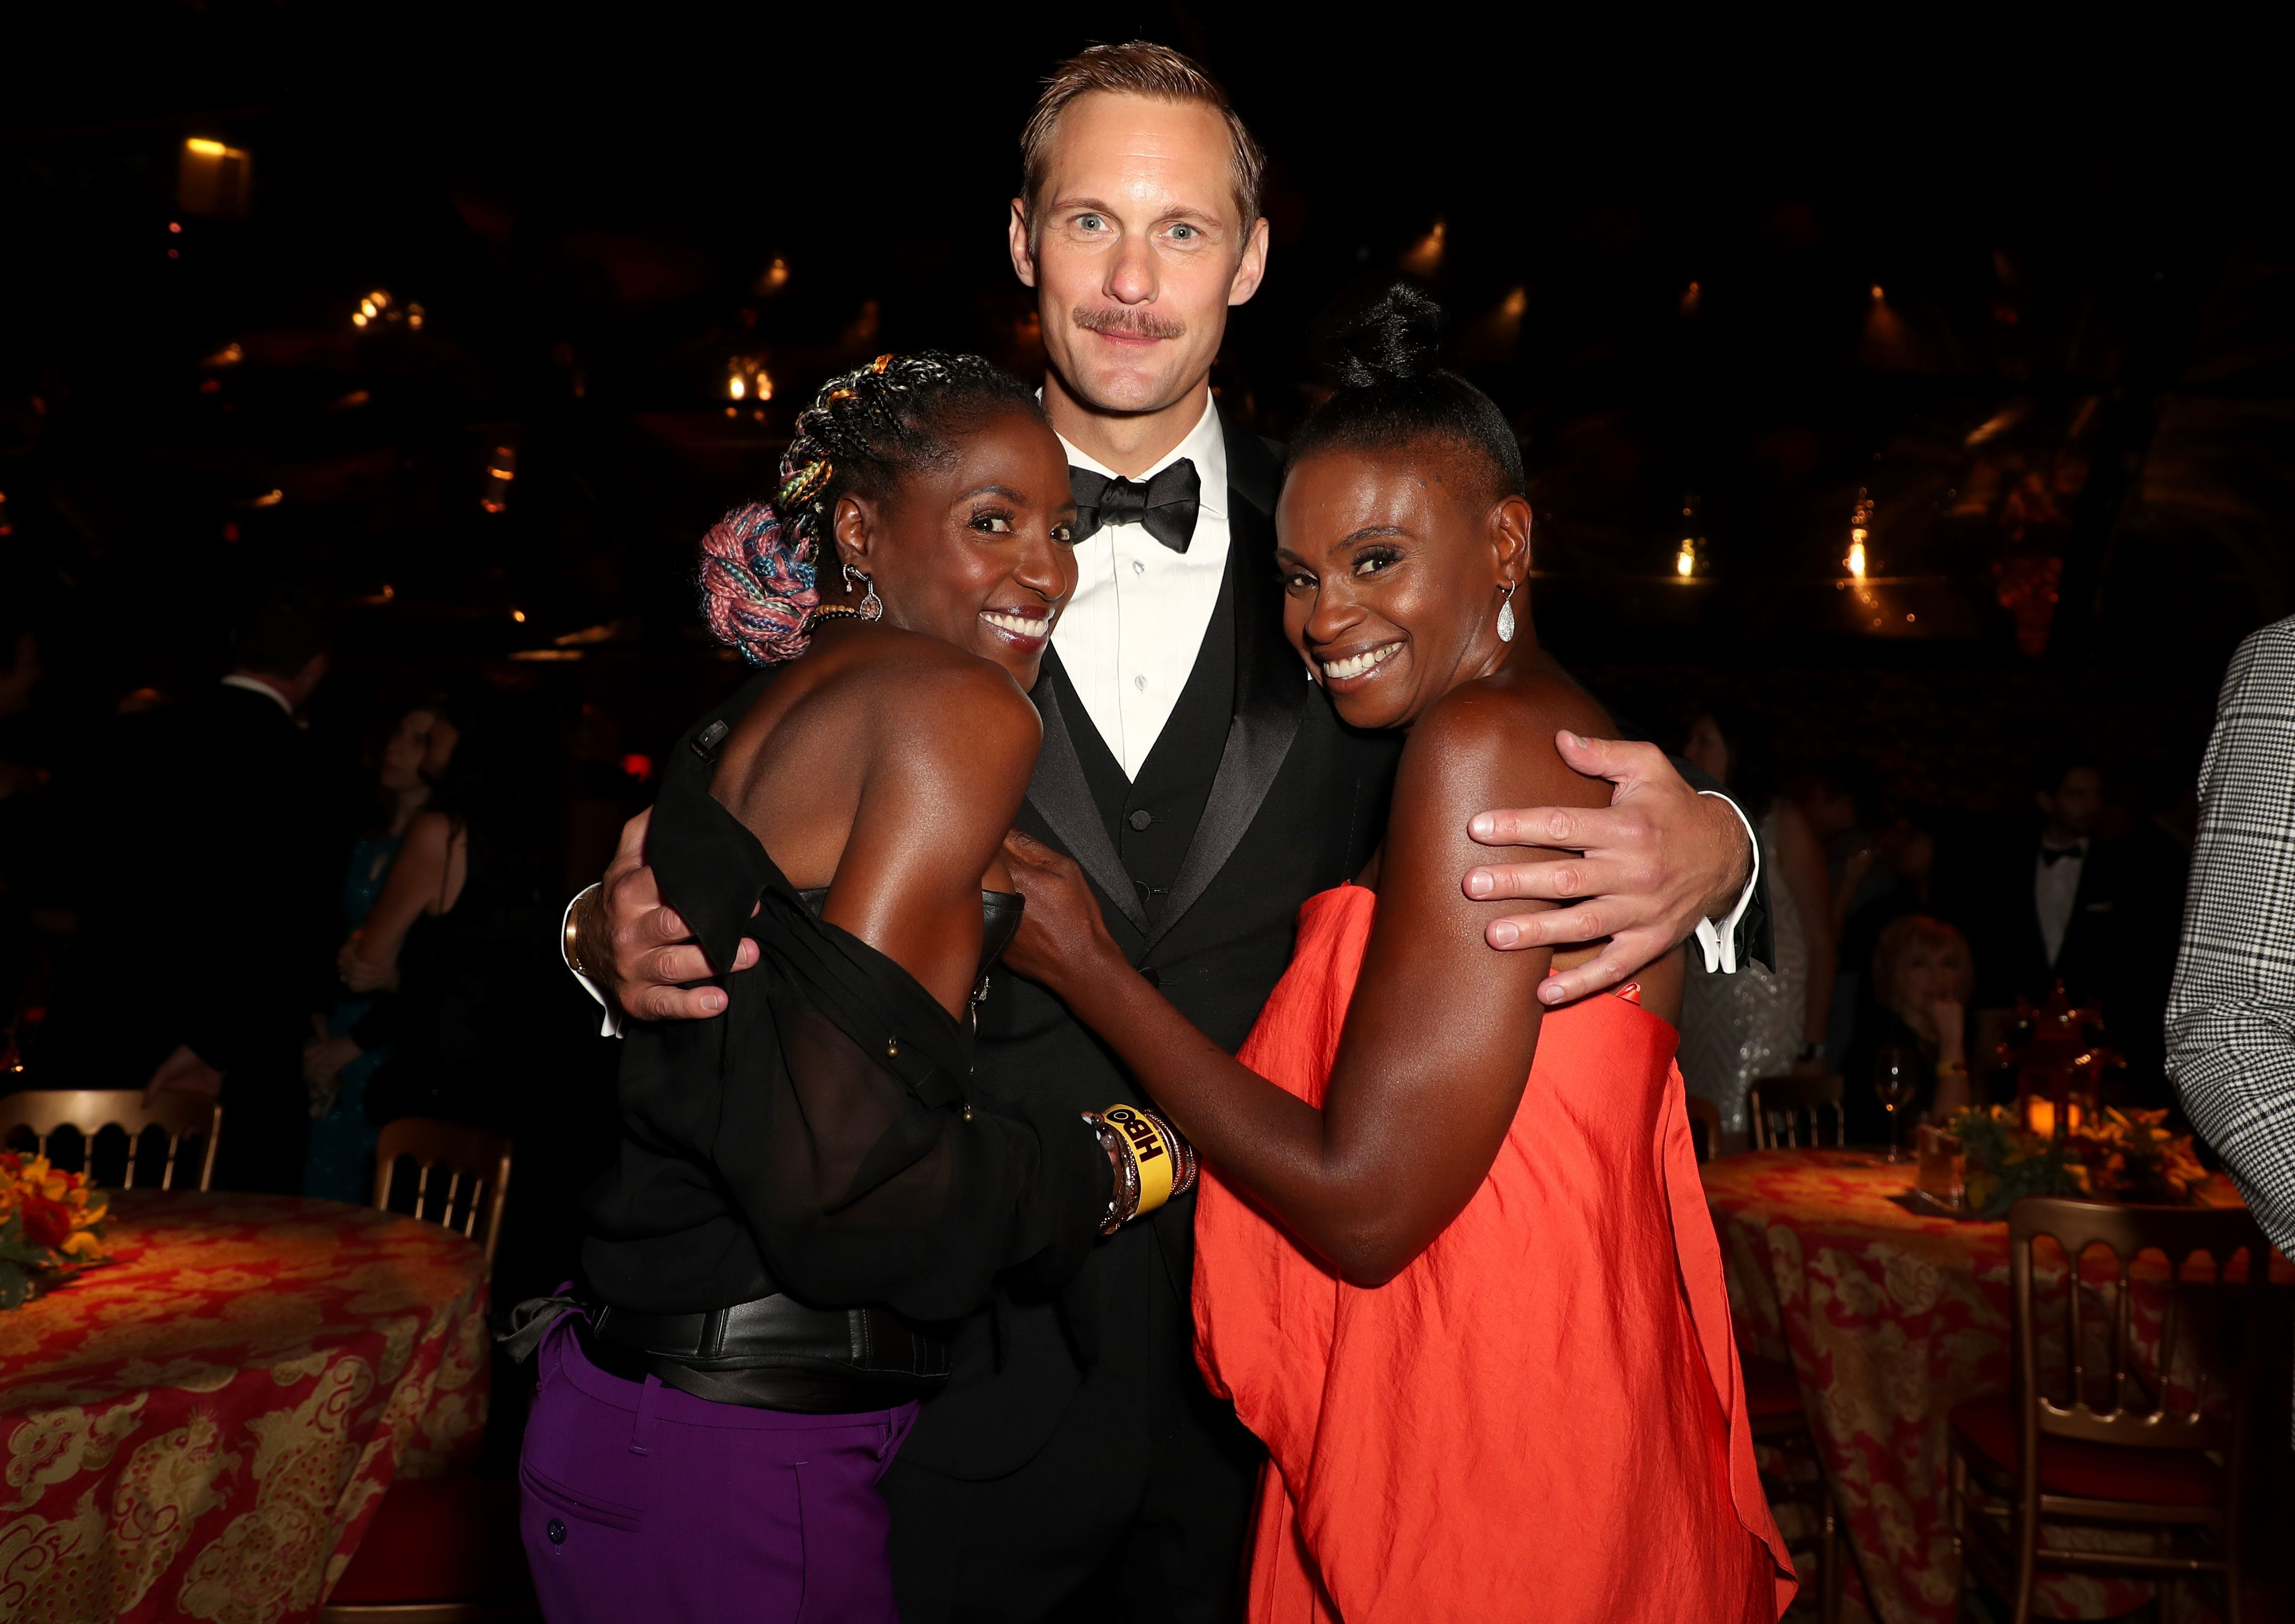 Rutina Wesley, Alexander Skarsgard and Adina Porter attend the HBO afterparty in Los Angeles on Sept. 17, 2017.